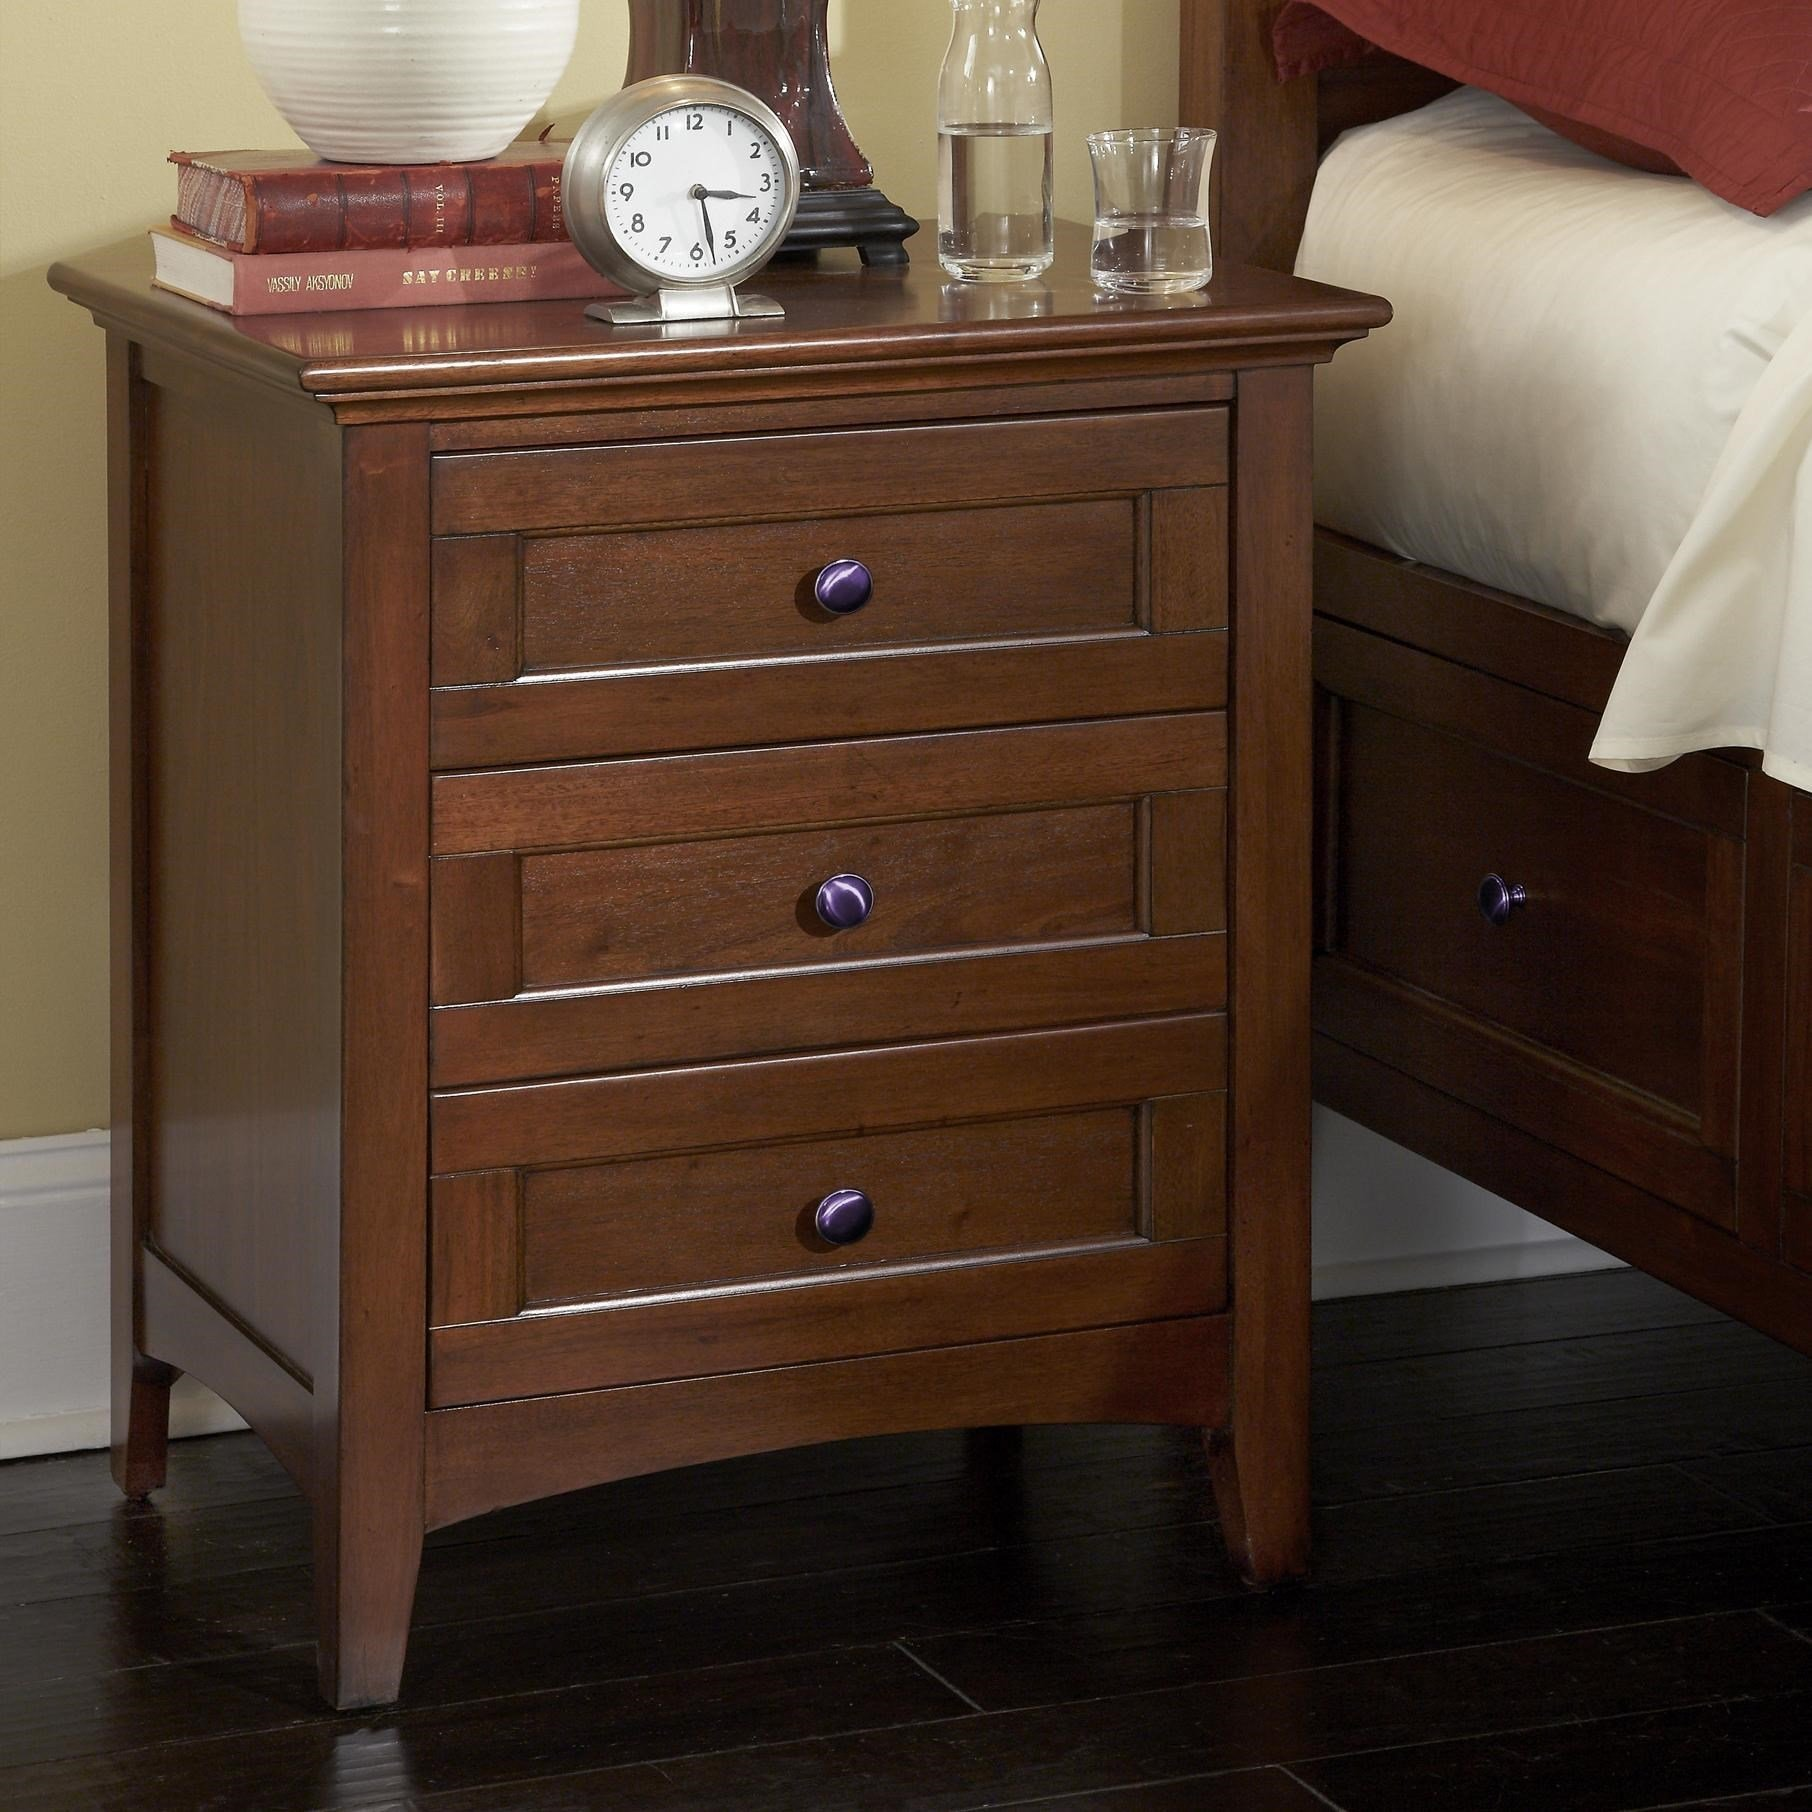 Best Waterford Collection 3 Drawer Night Stand With Cord Managment Rotmans Night Stands Worcester With Pictures